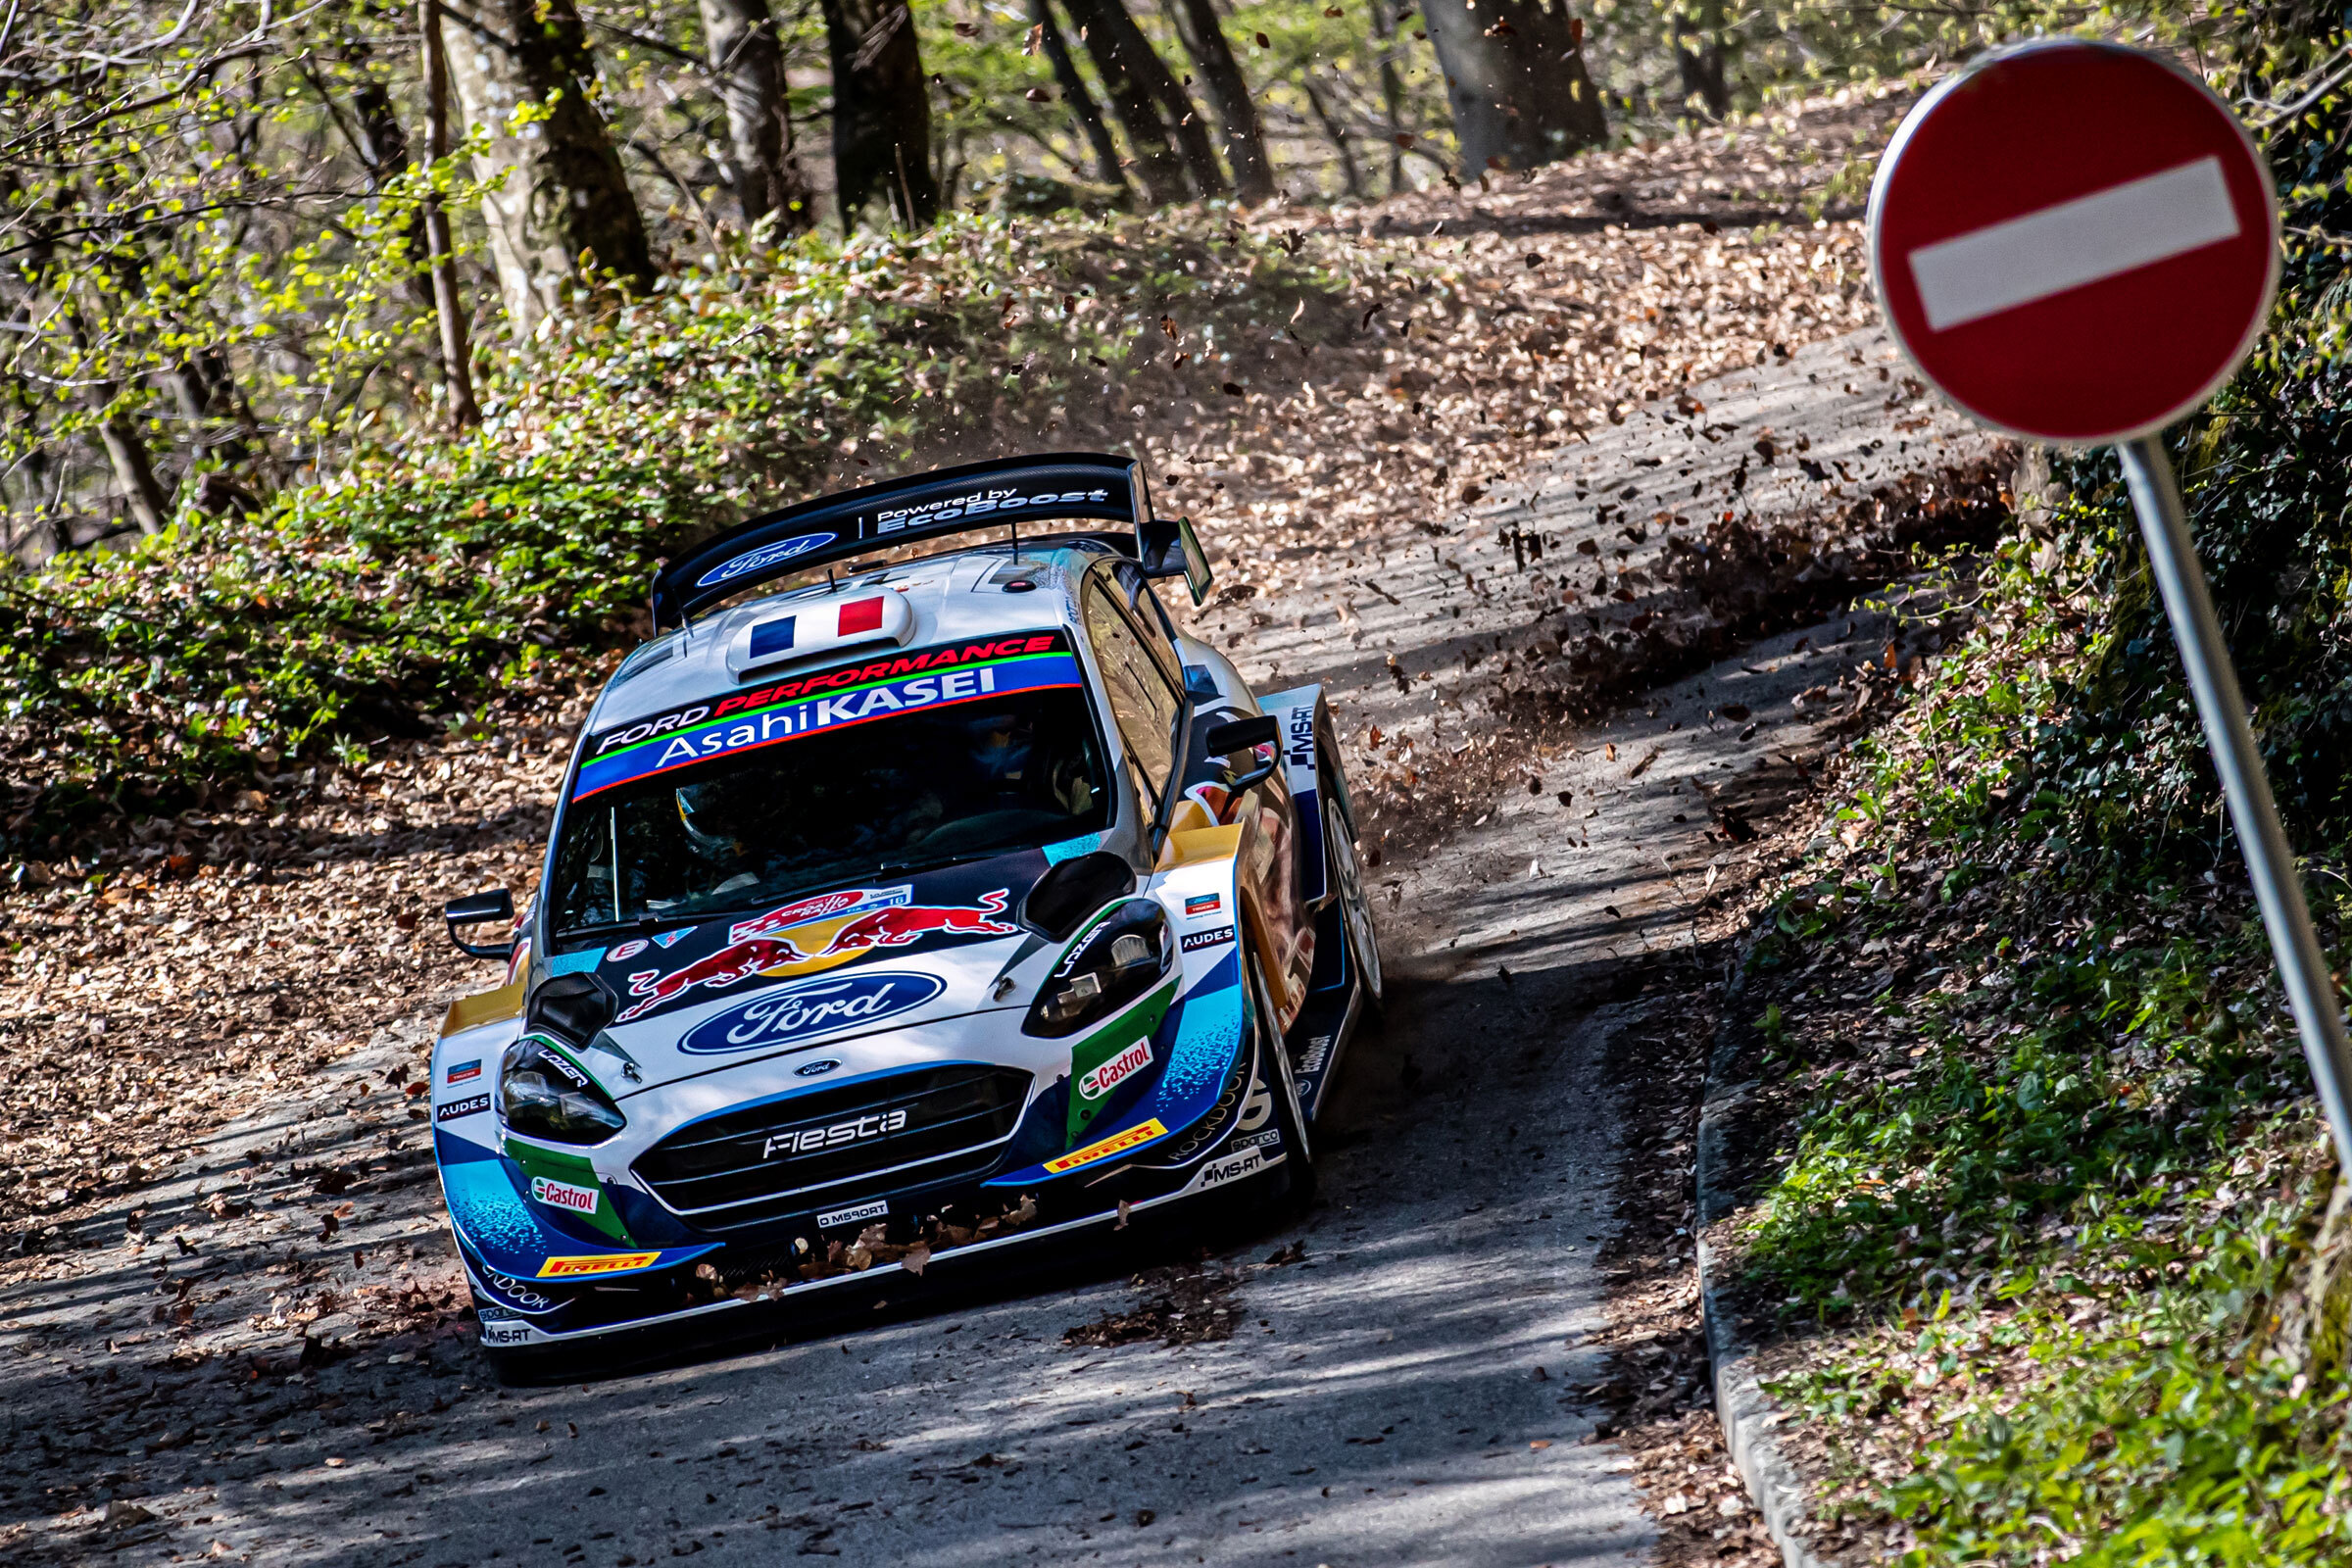 Fourmaux: Croatia Rally perfect event to step up in WRC - 2